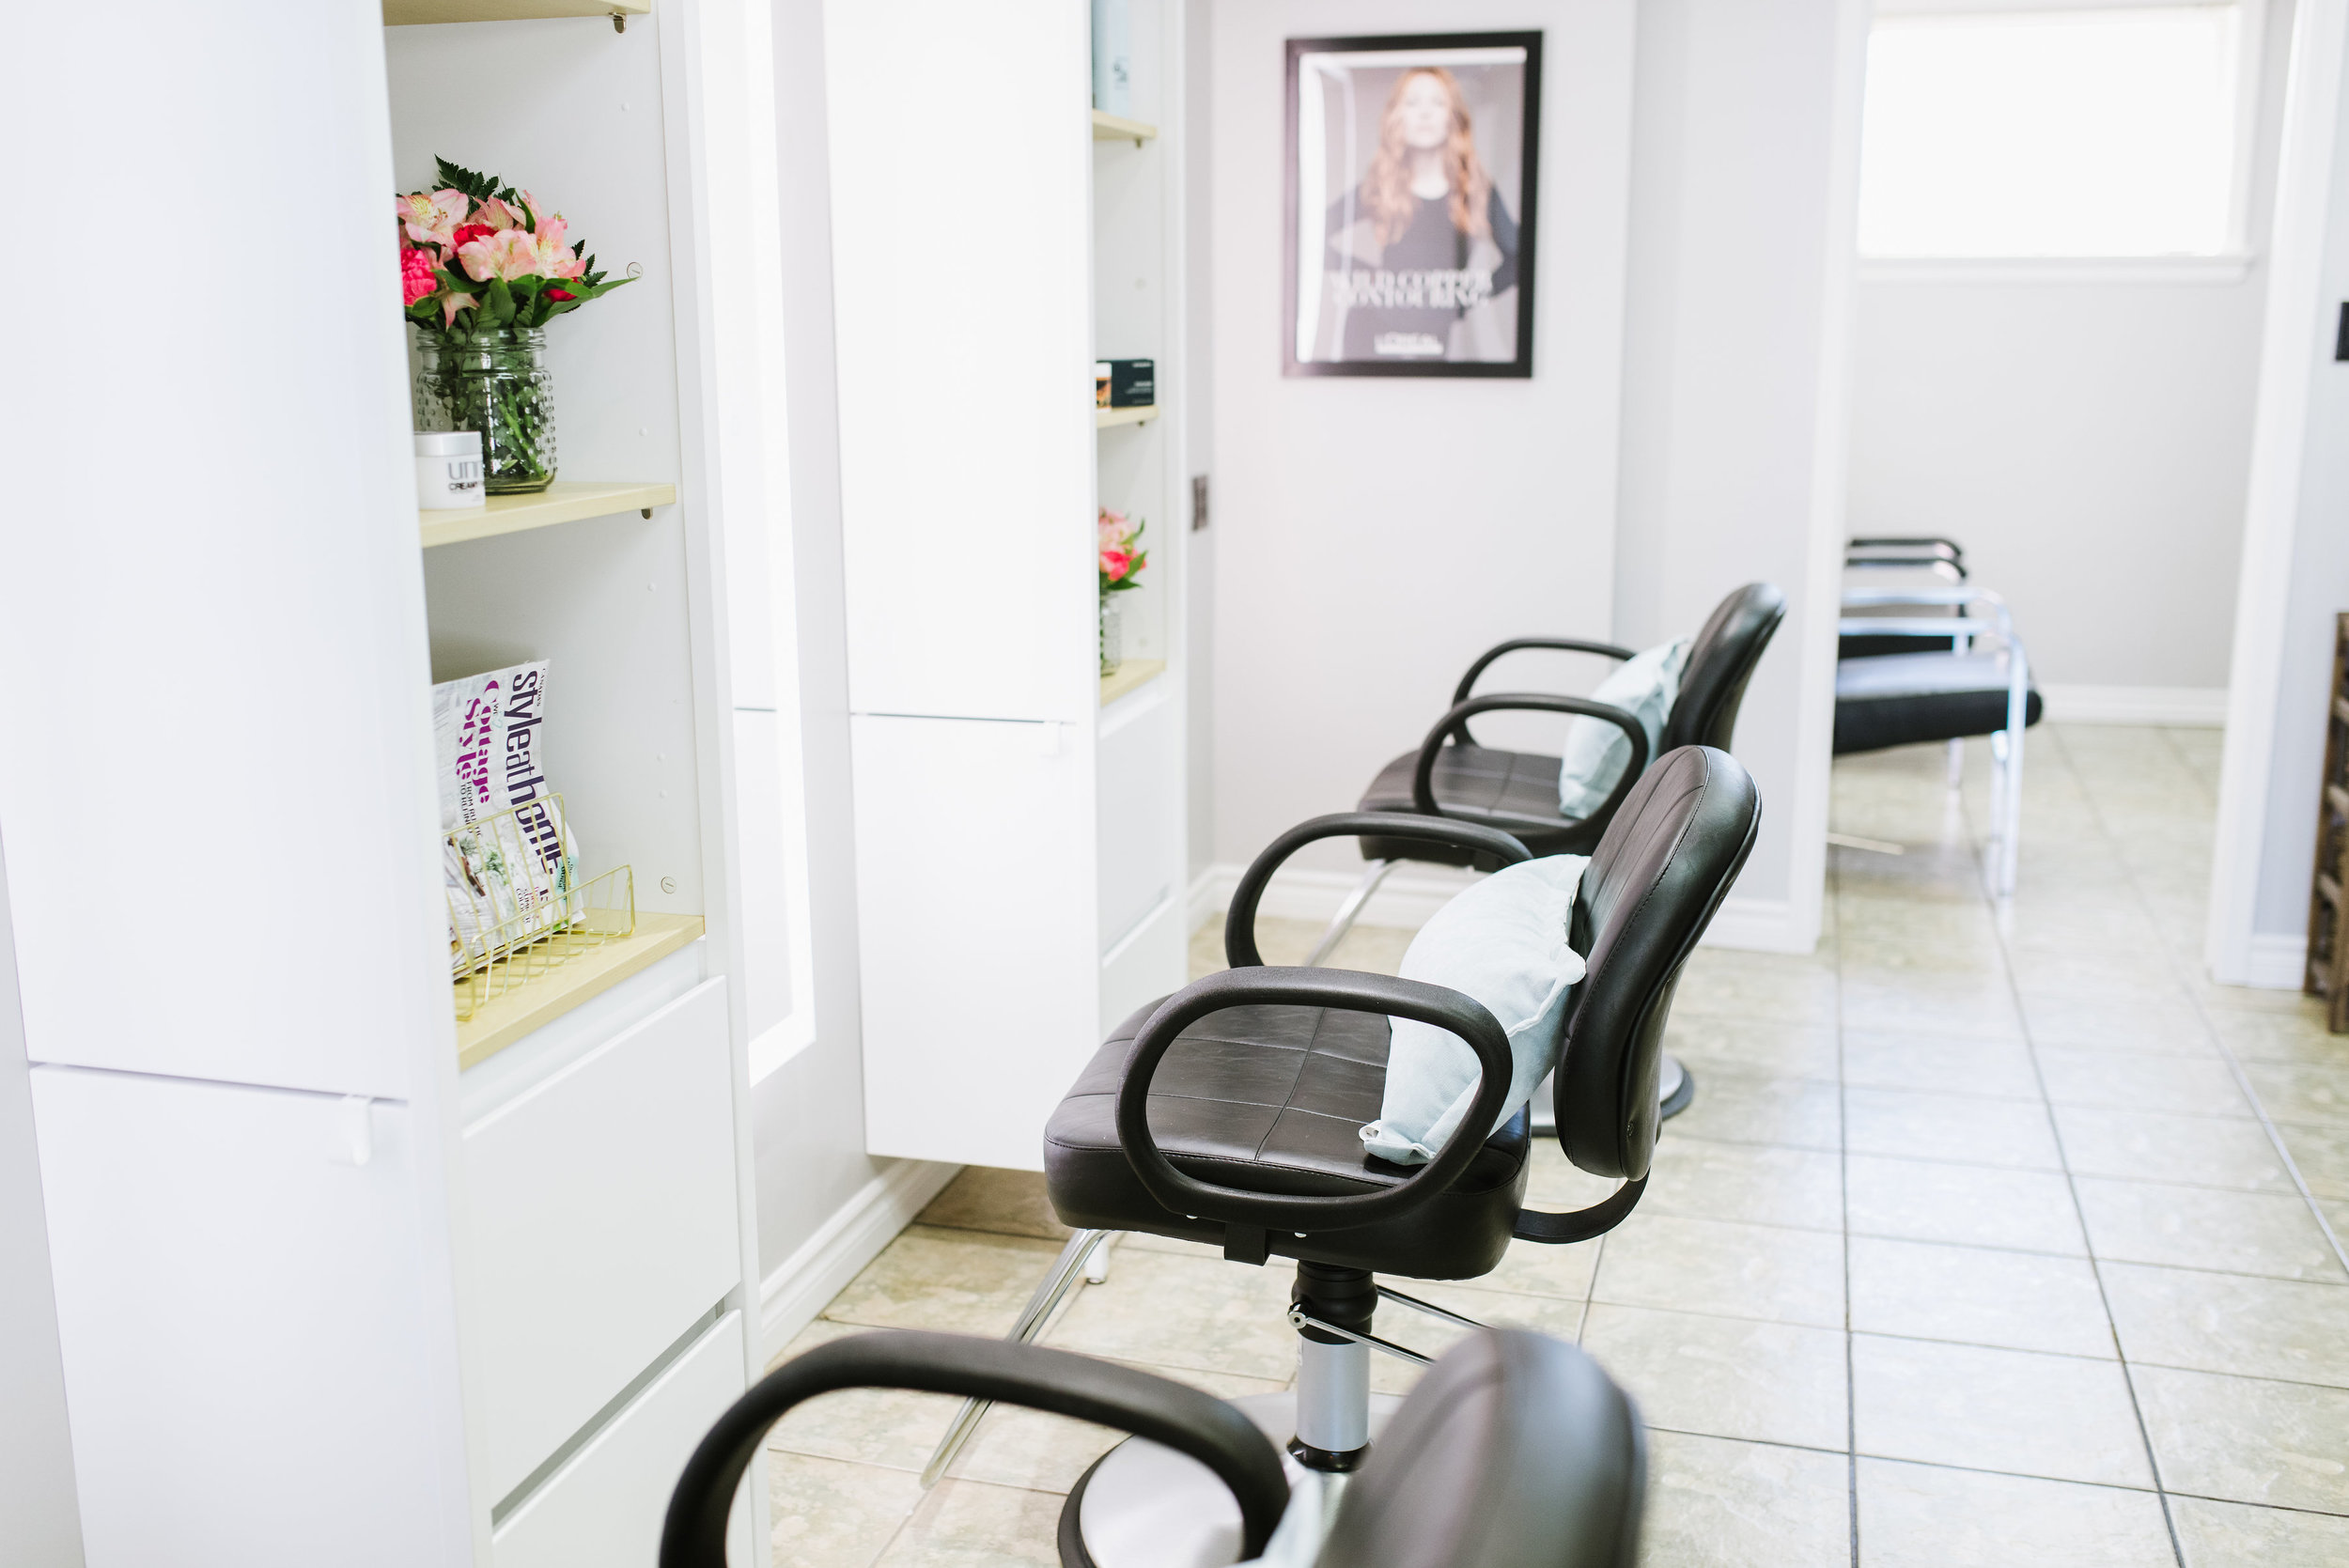 waves salon oshawa side view1.jpg